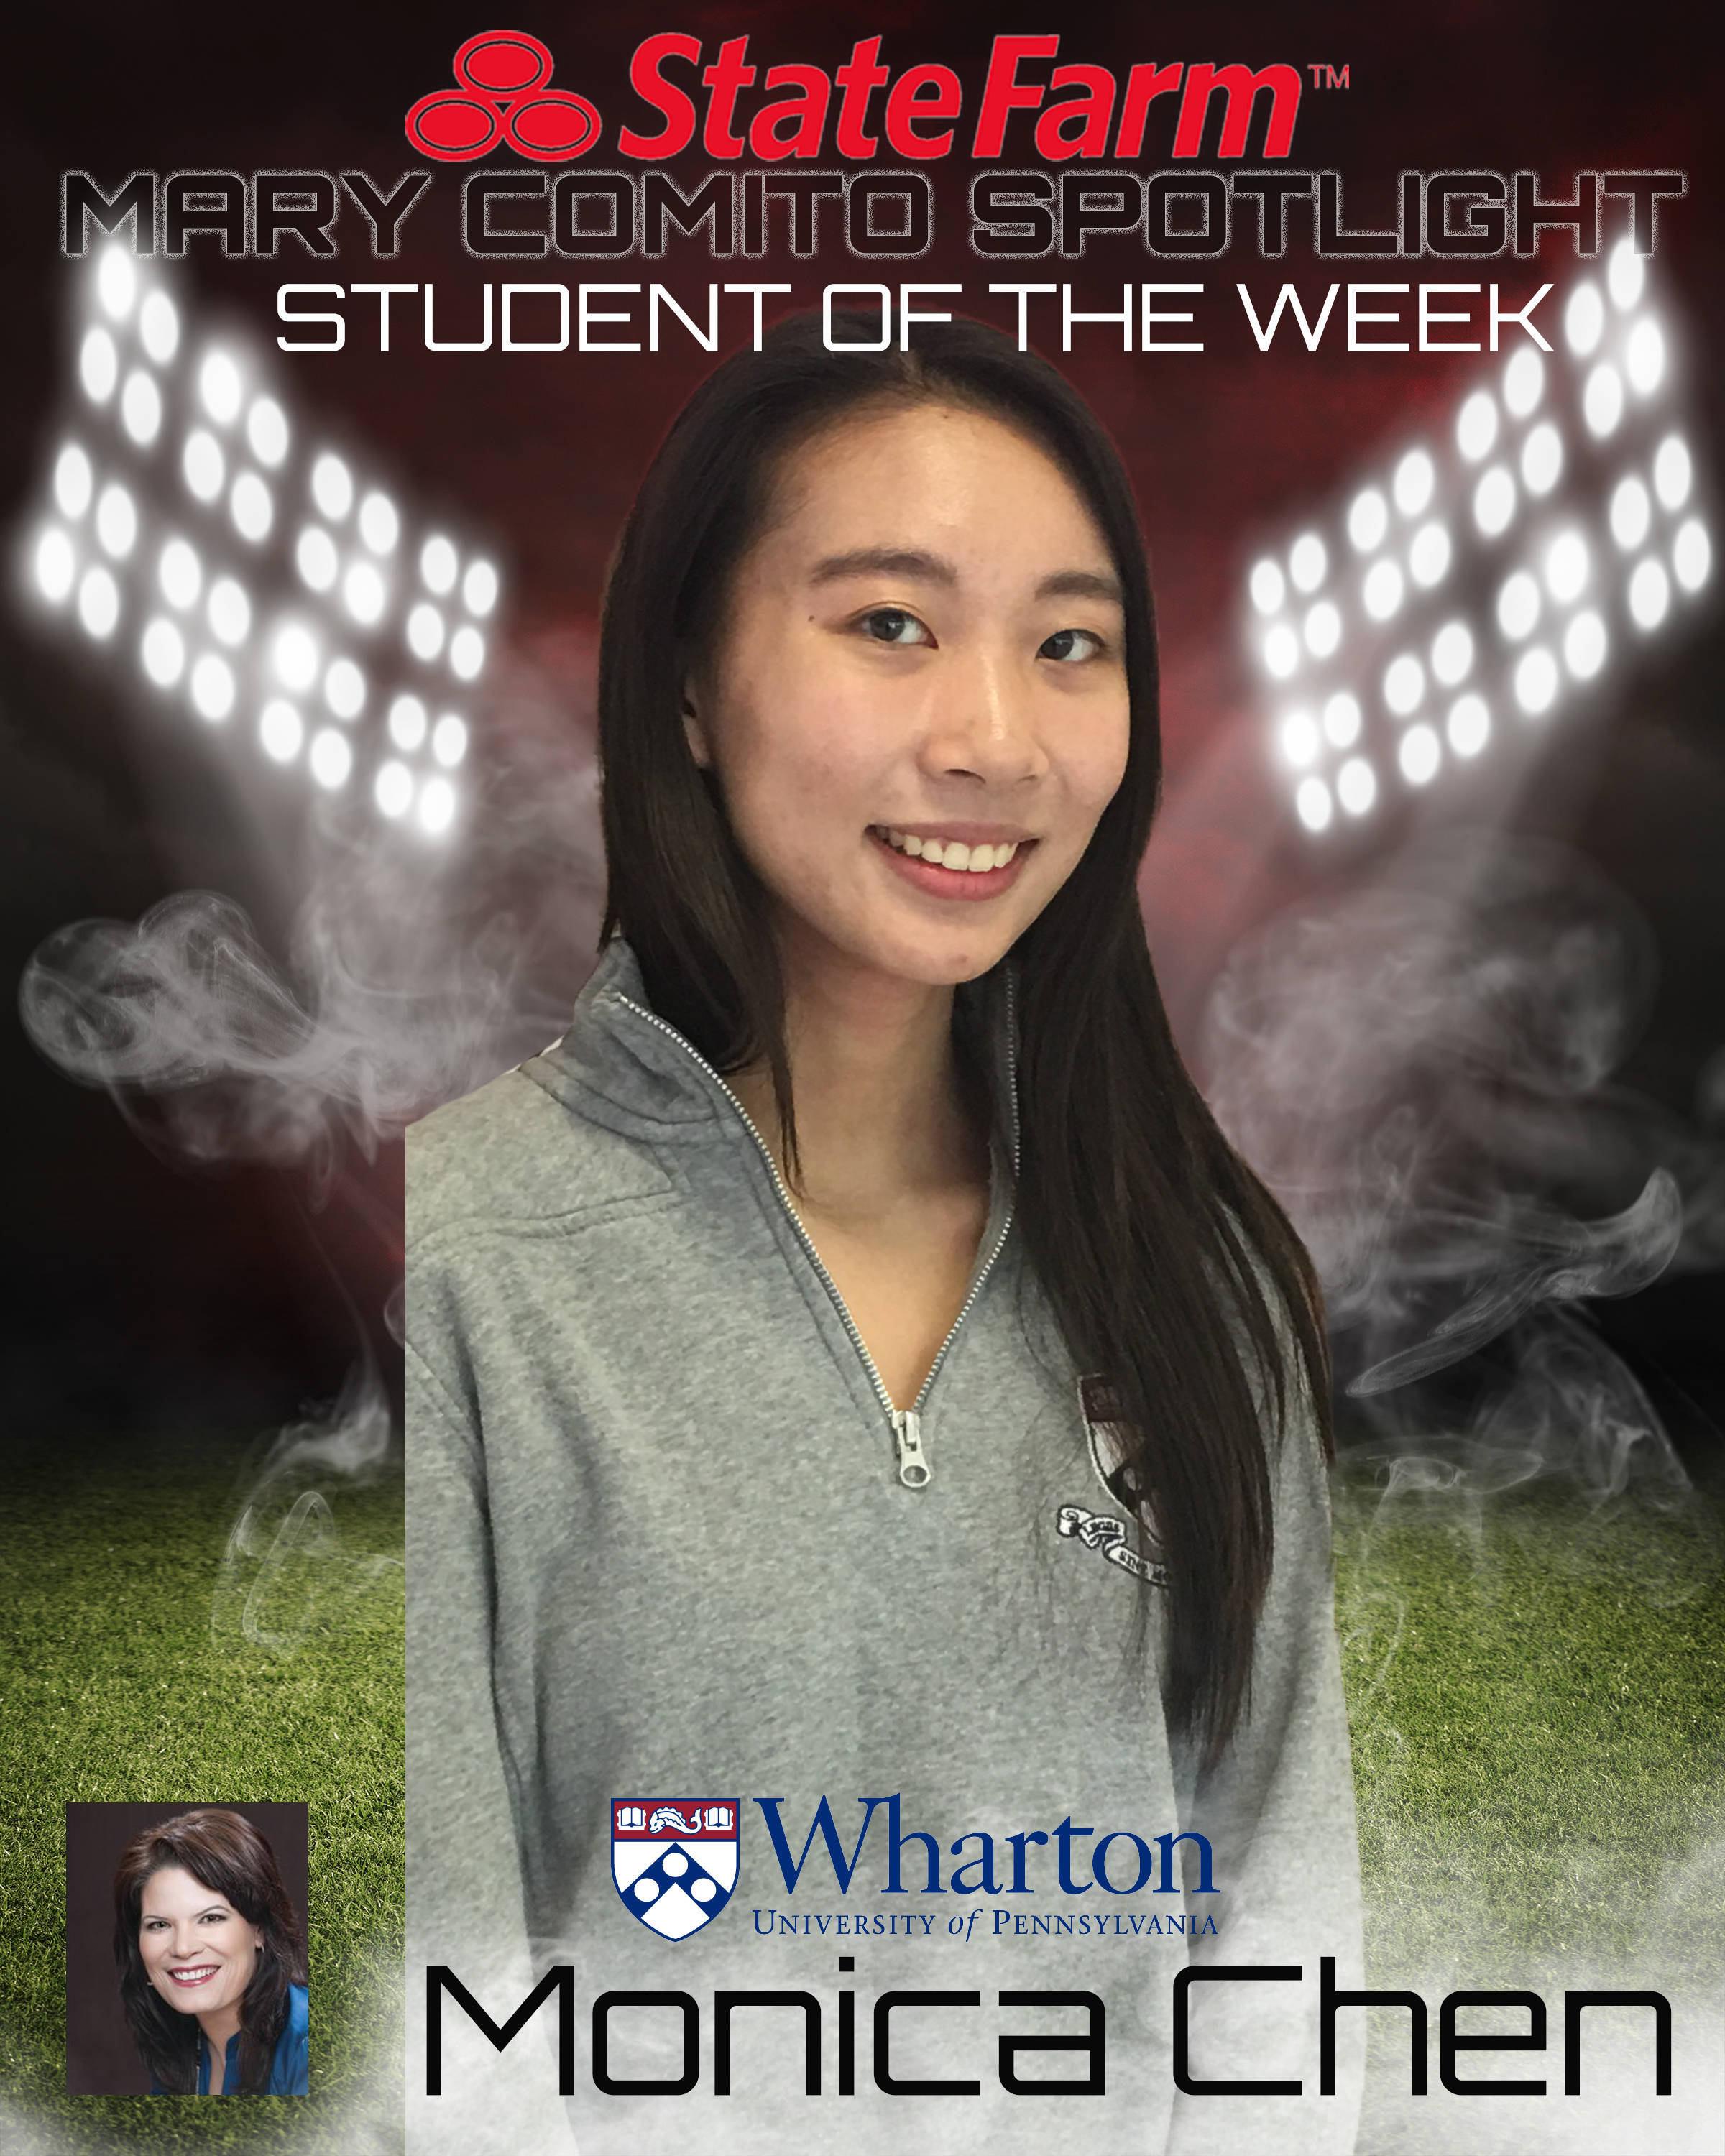 3cedcb57001a30045afb_student_of_the_week_chen.jpg